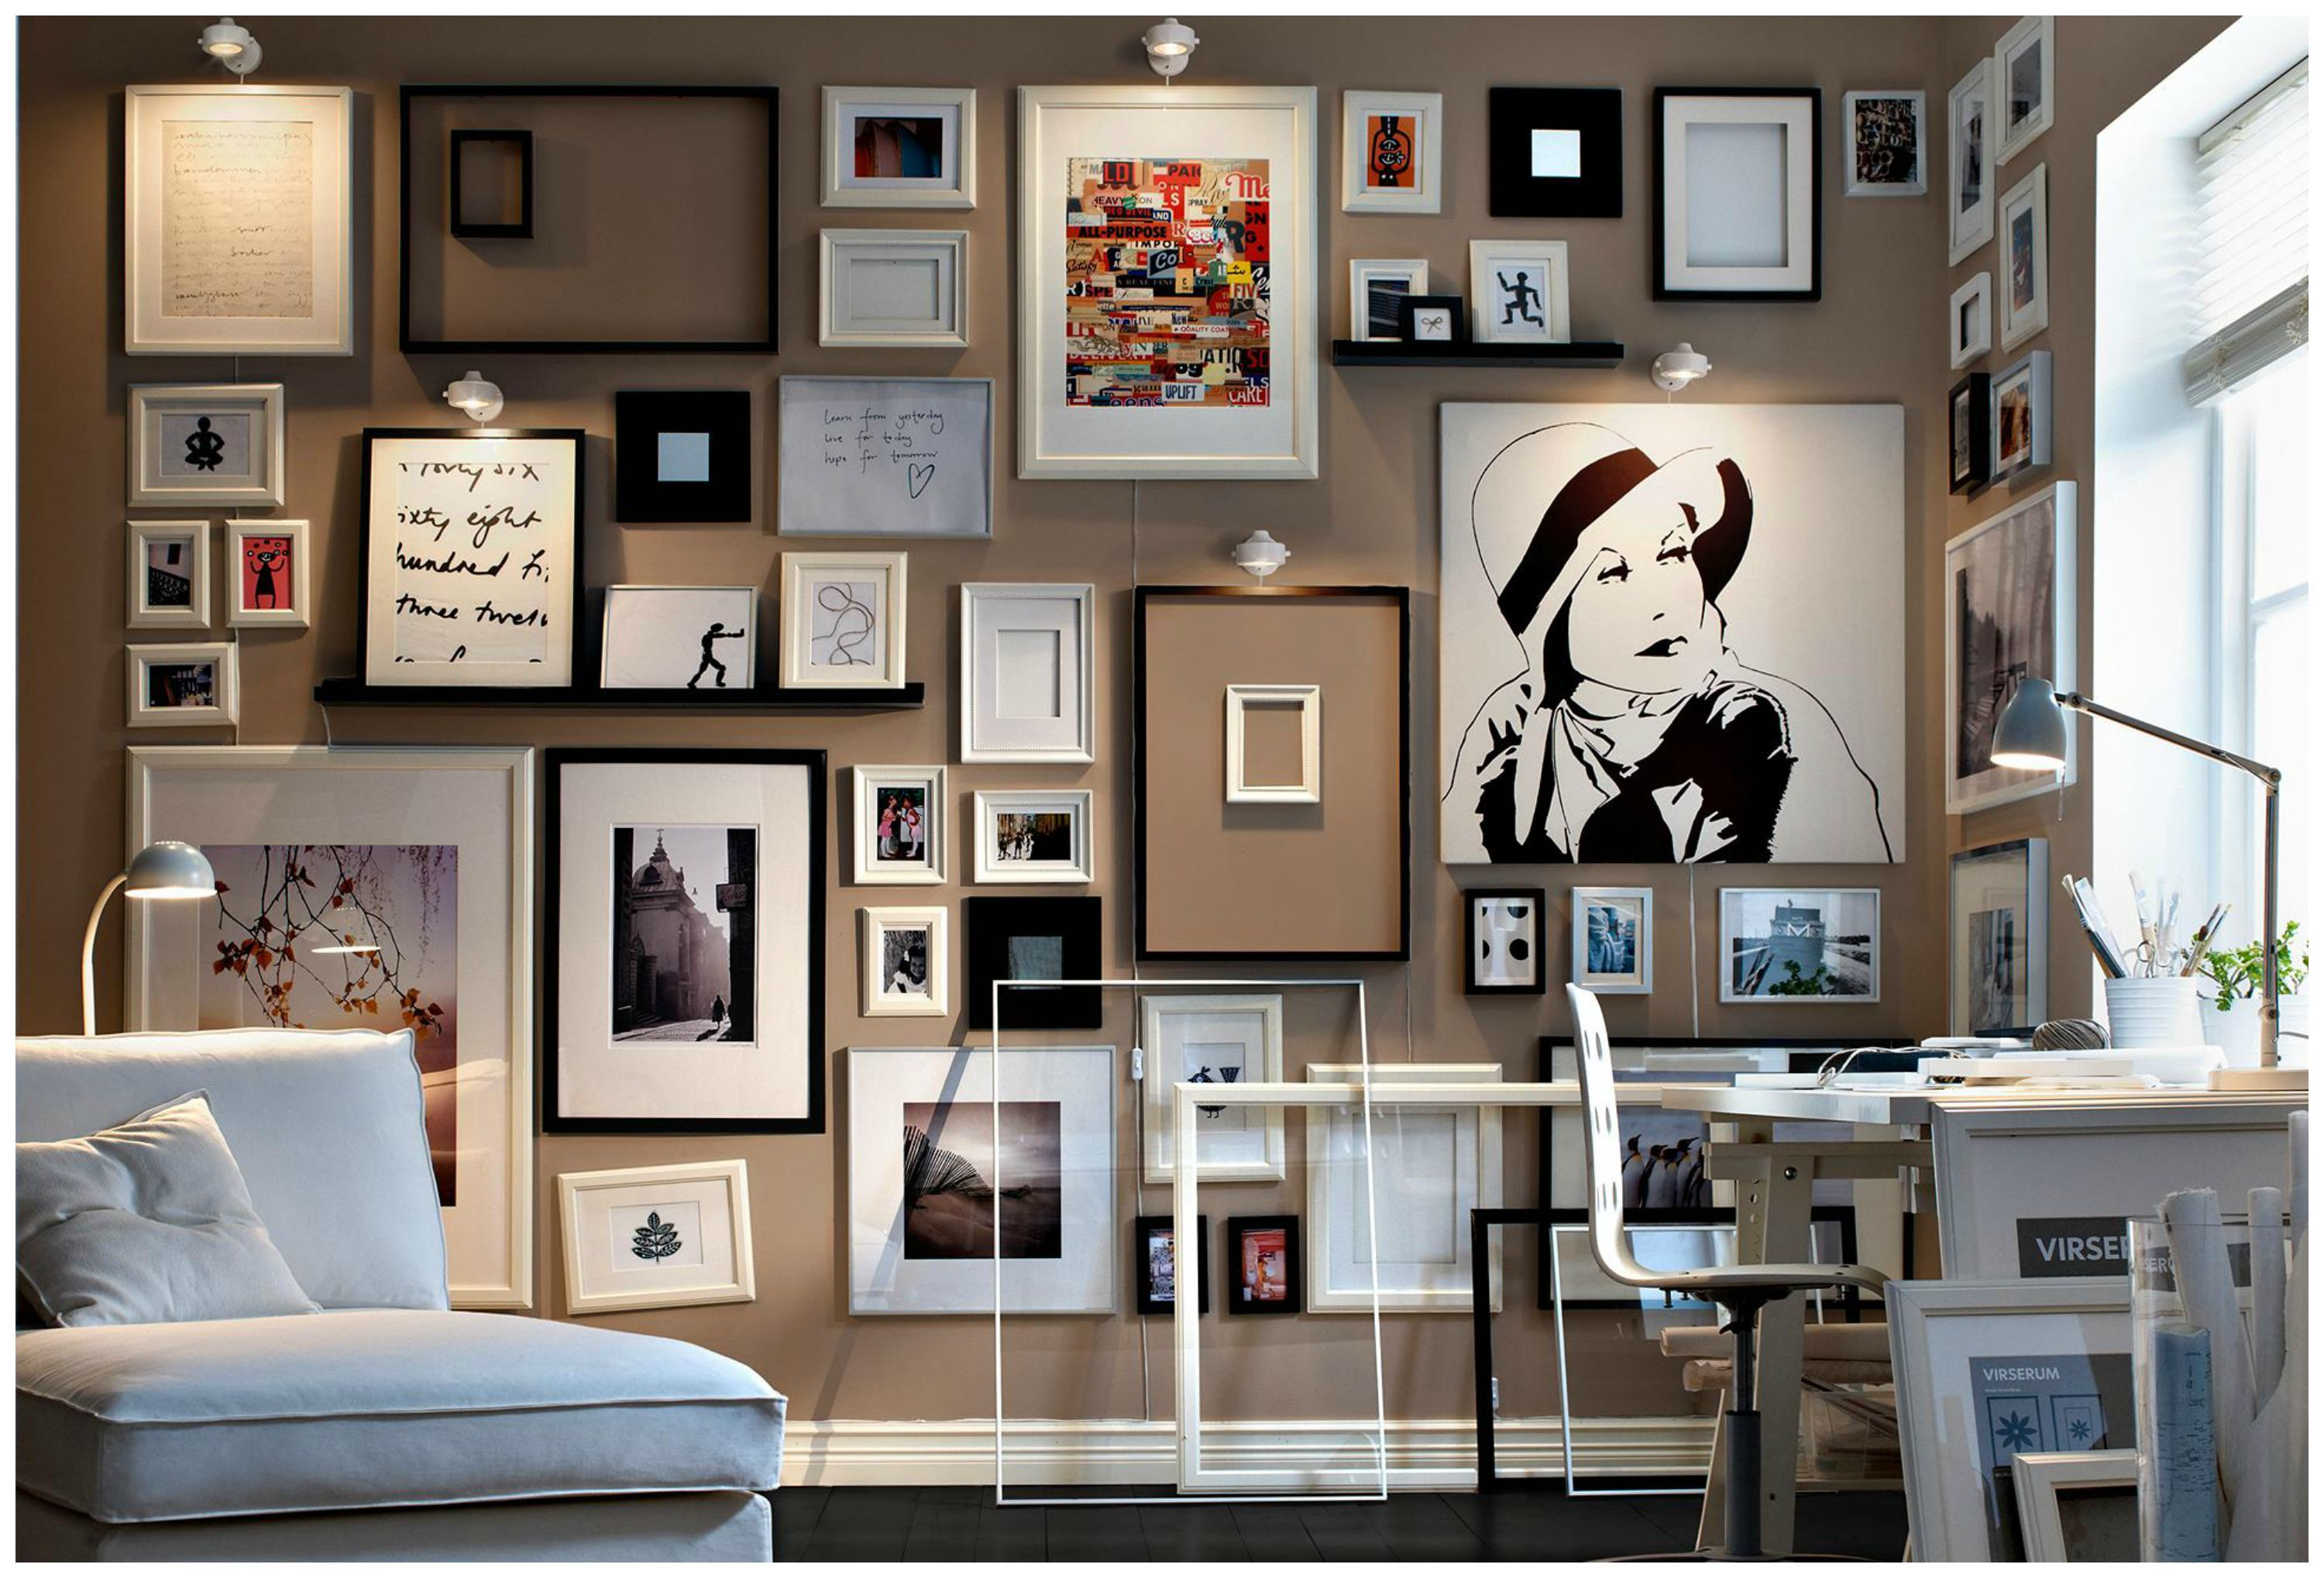 Golden state framing is an art wholesaler located in south san golden state framing is an art wholesaler located in south san francisco california that specializes in customized picture frames we are a nation jeuxipadfo Gallery